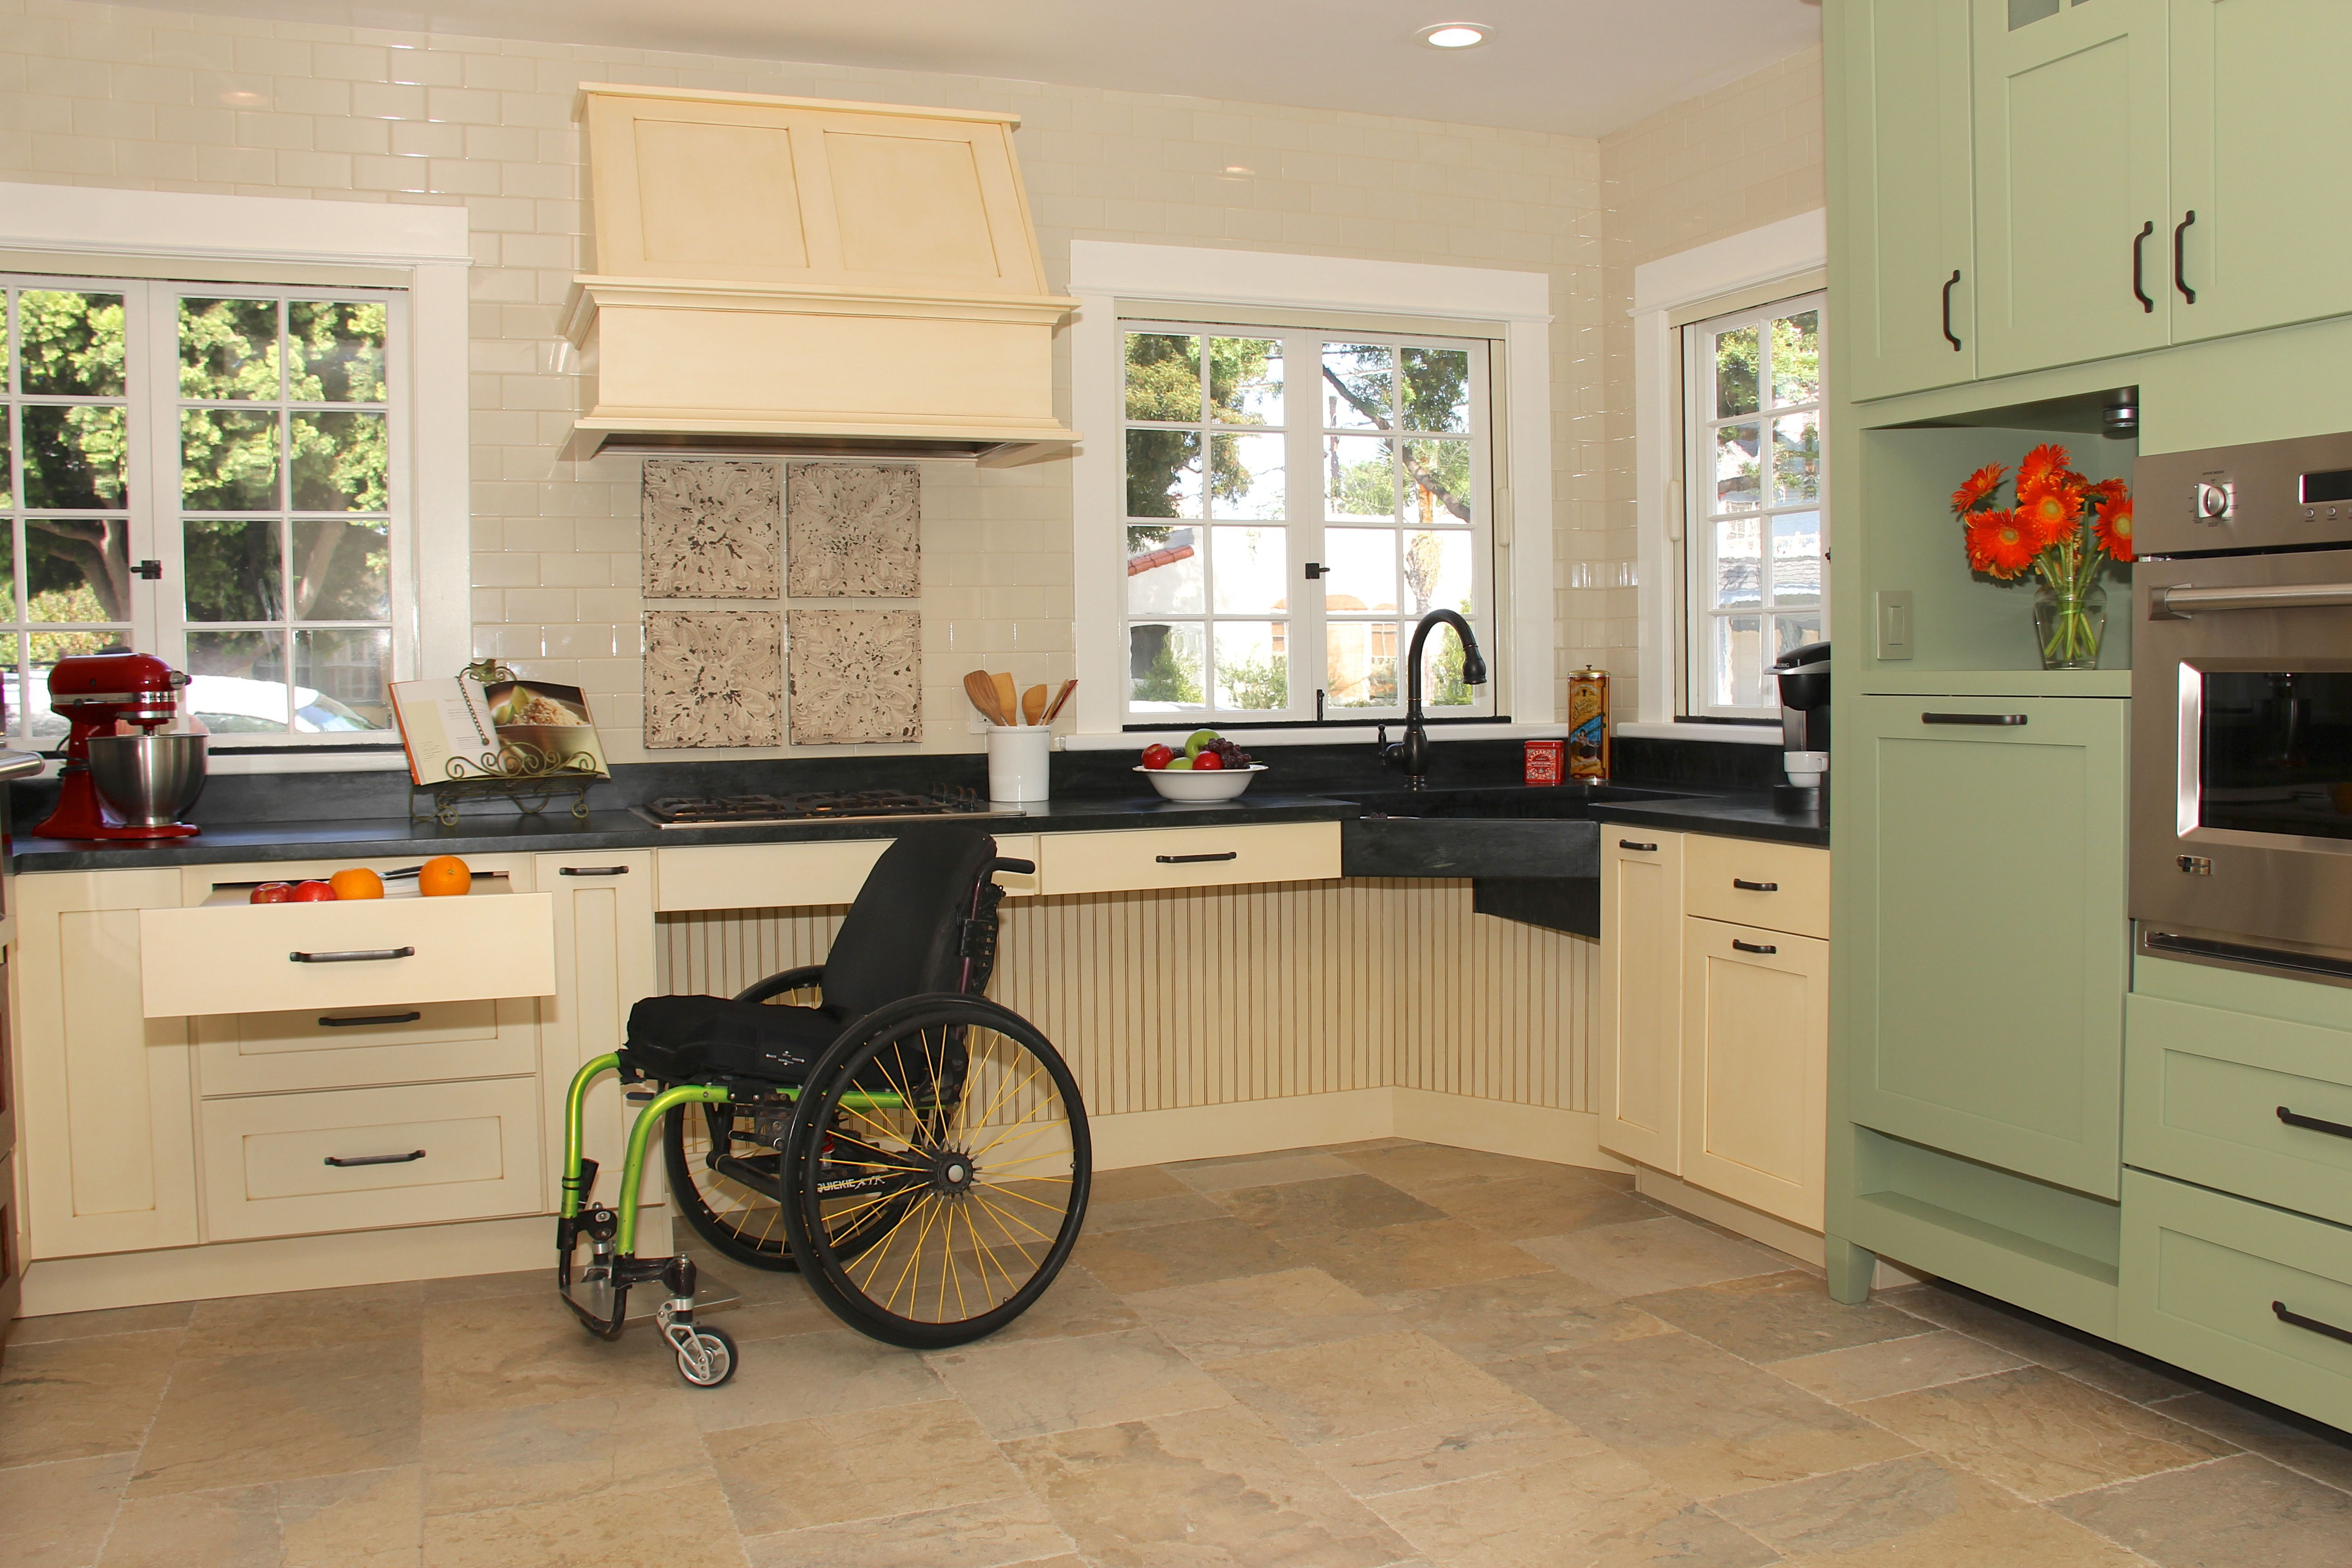 2014 Nkba Design Competition Accessible Kitchen Kitchen Design Best Kitchen Designs